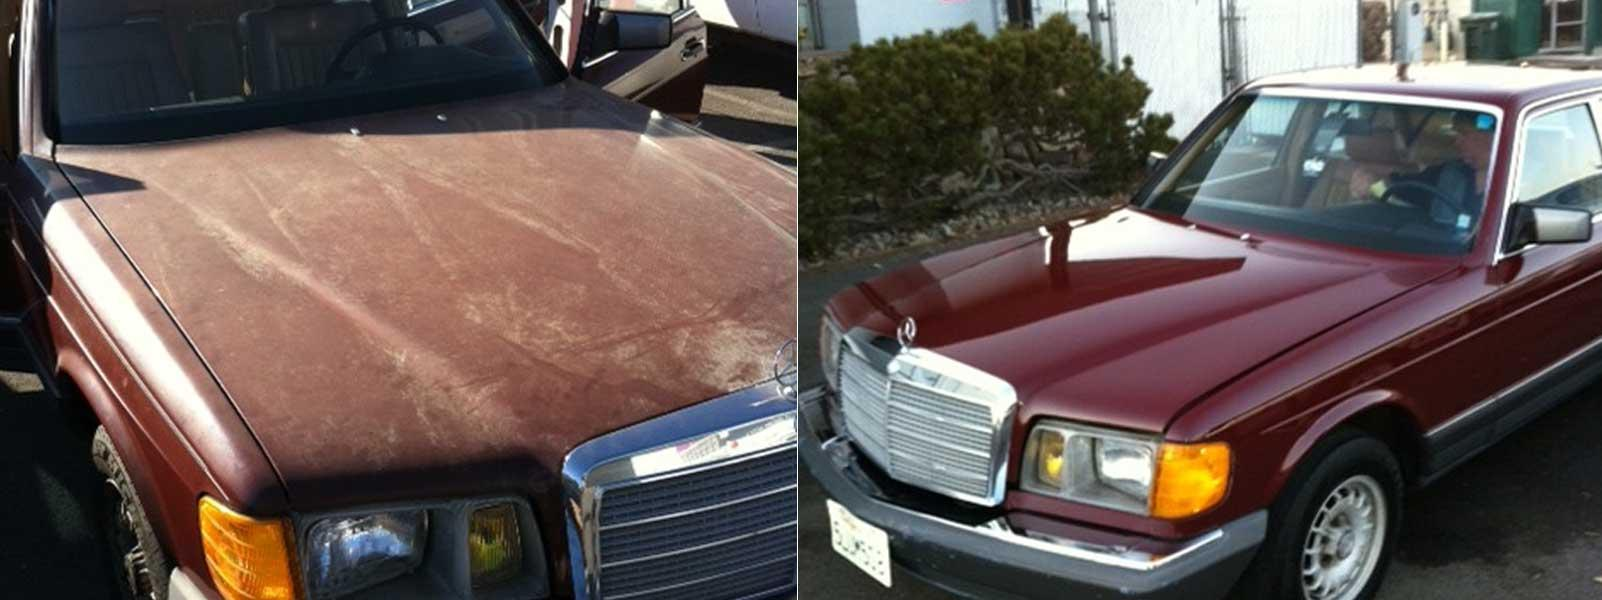 Maaco collision repair auto painting chicago illinois for Maaco paint reviews